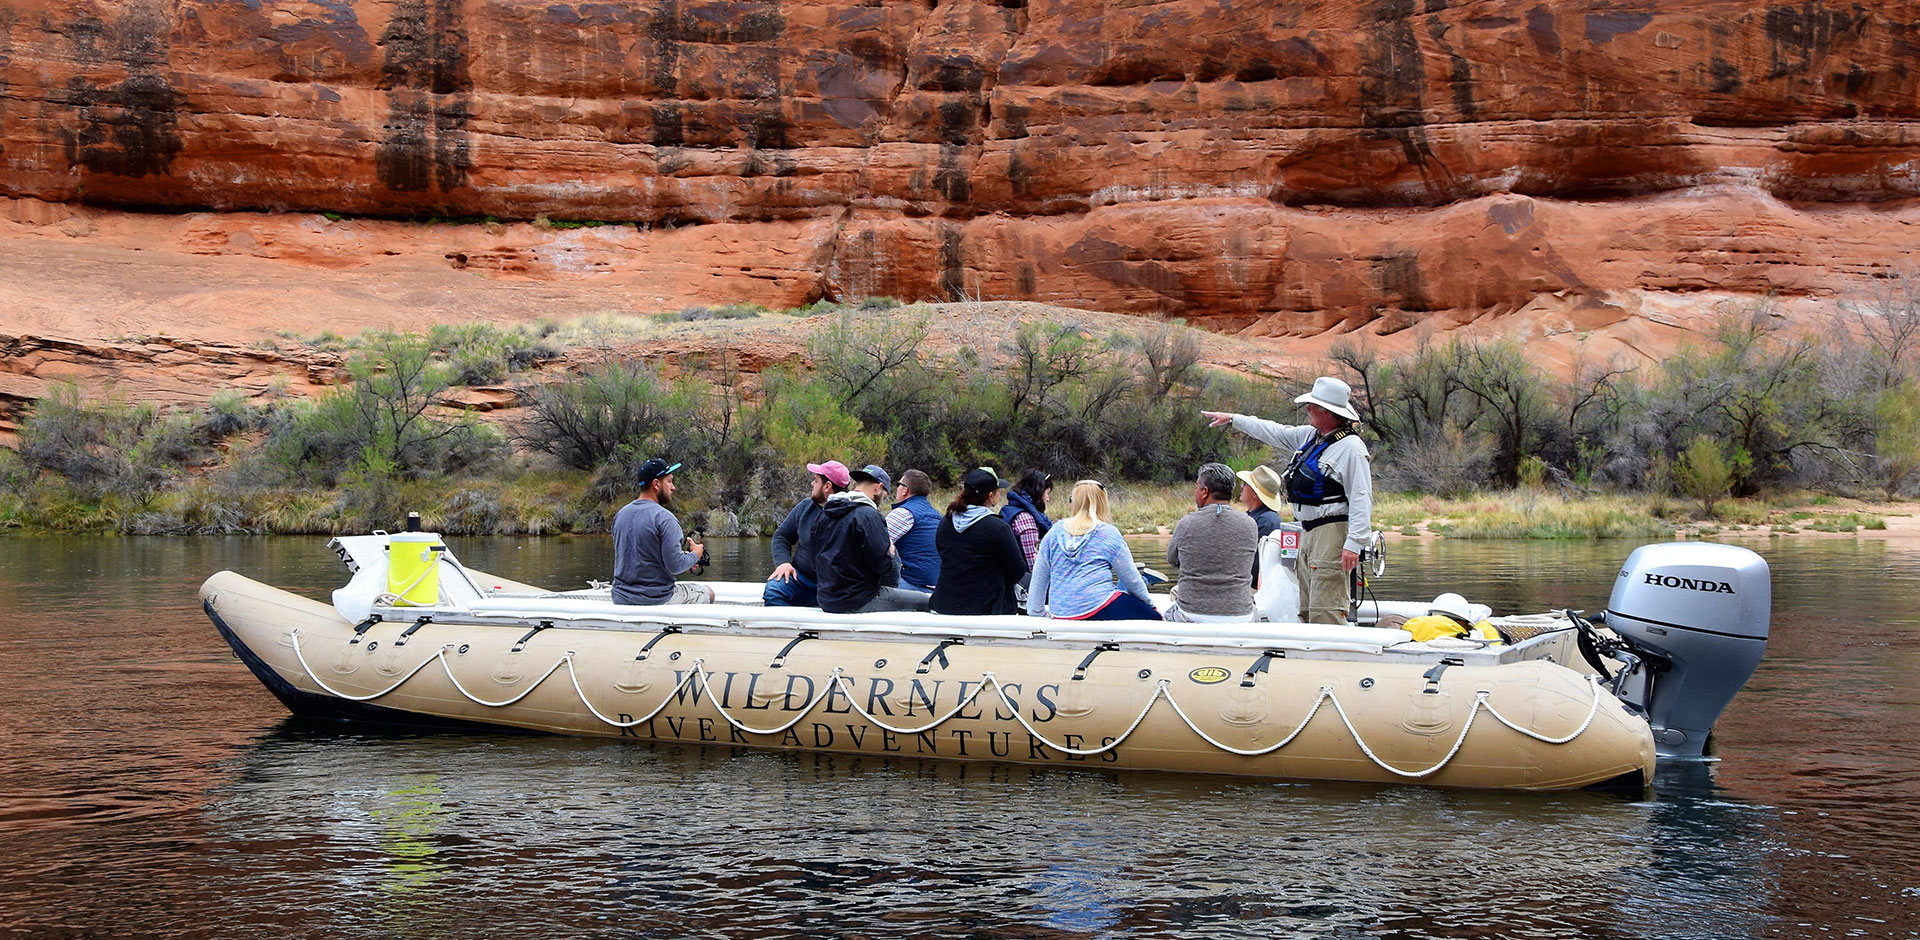 Passengers on a river raft on the Colorado River